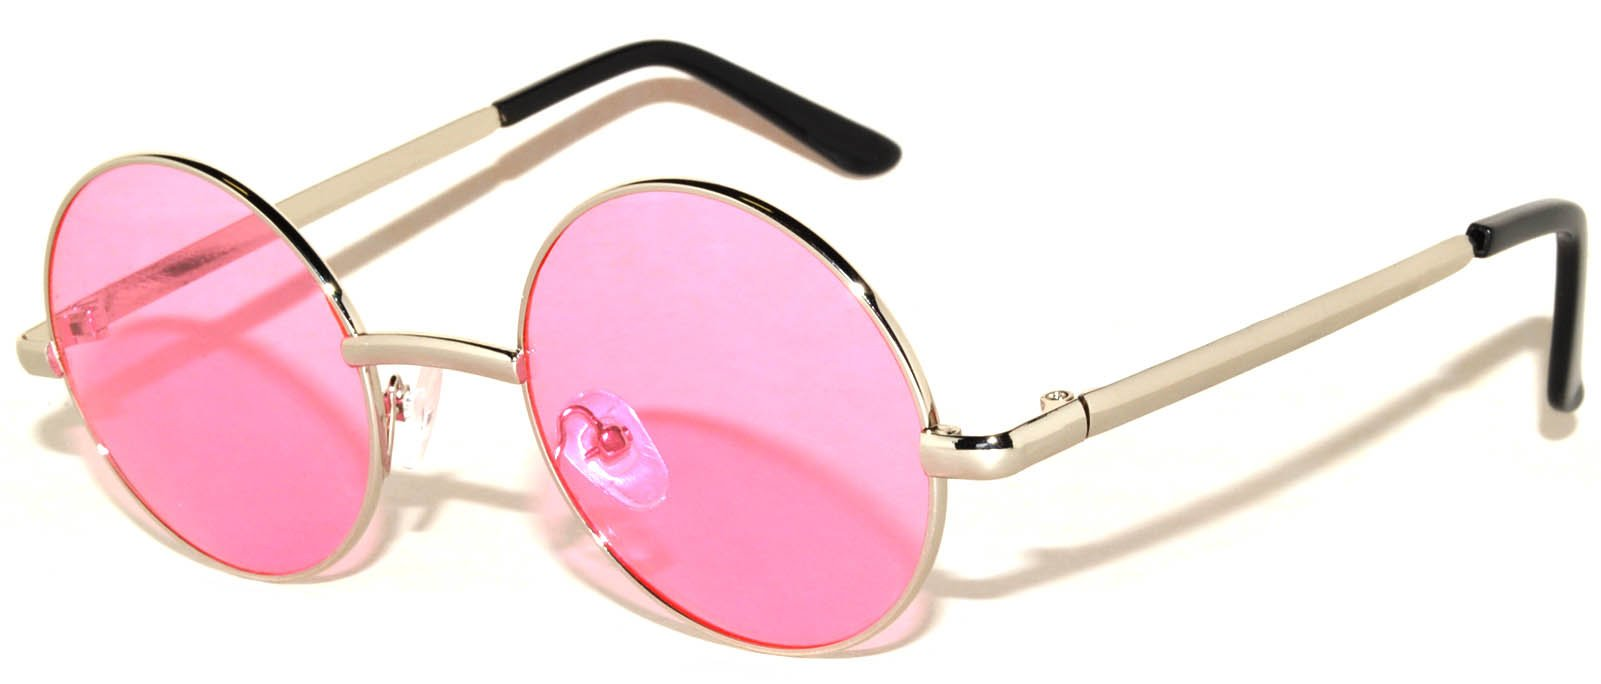 Round Retro Vintage Circle Tint Sunglasses Metal Silver Frame Pink Lens 43mm